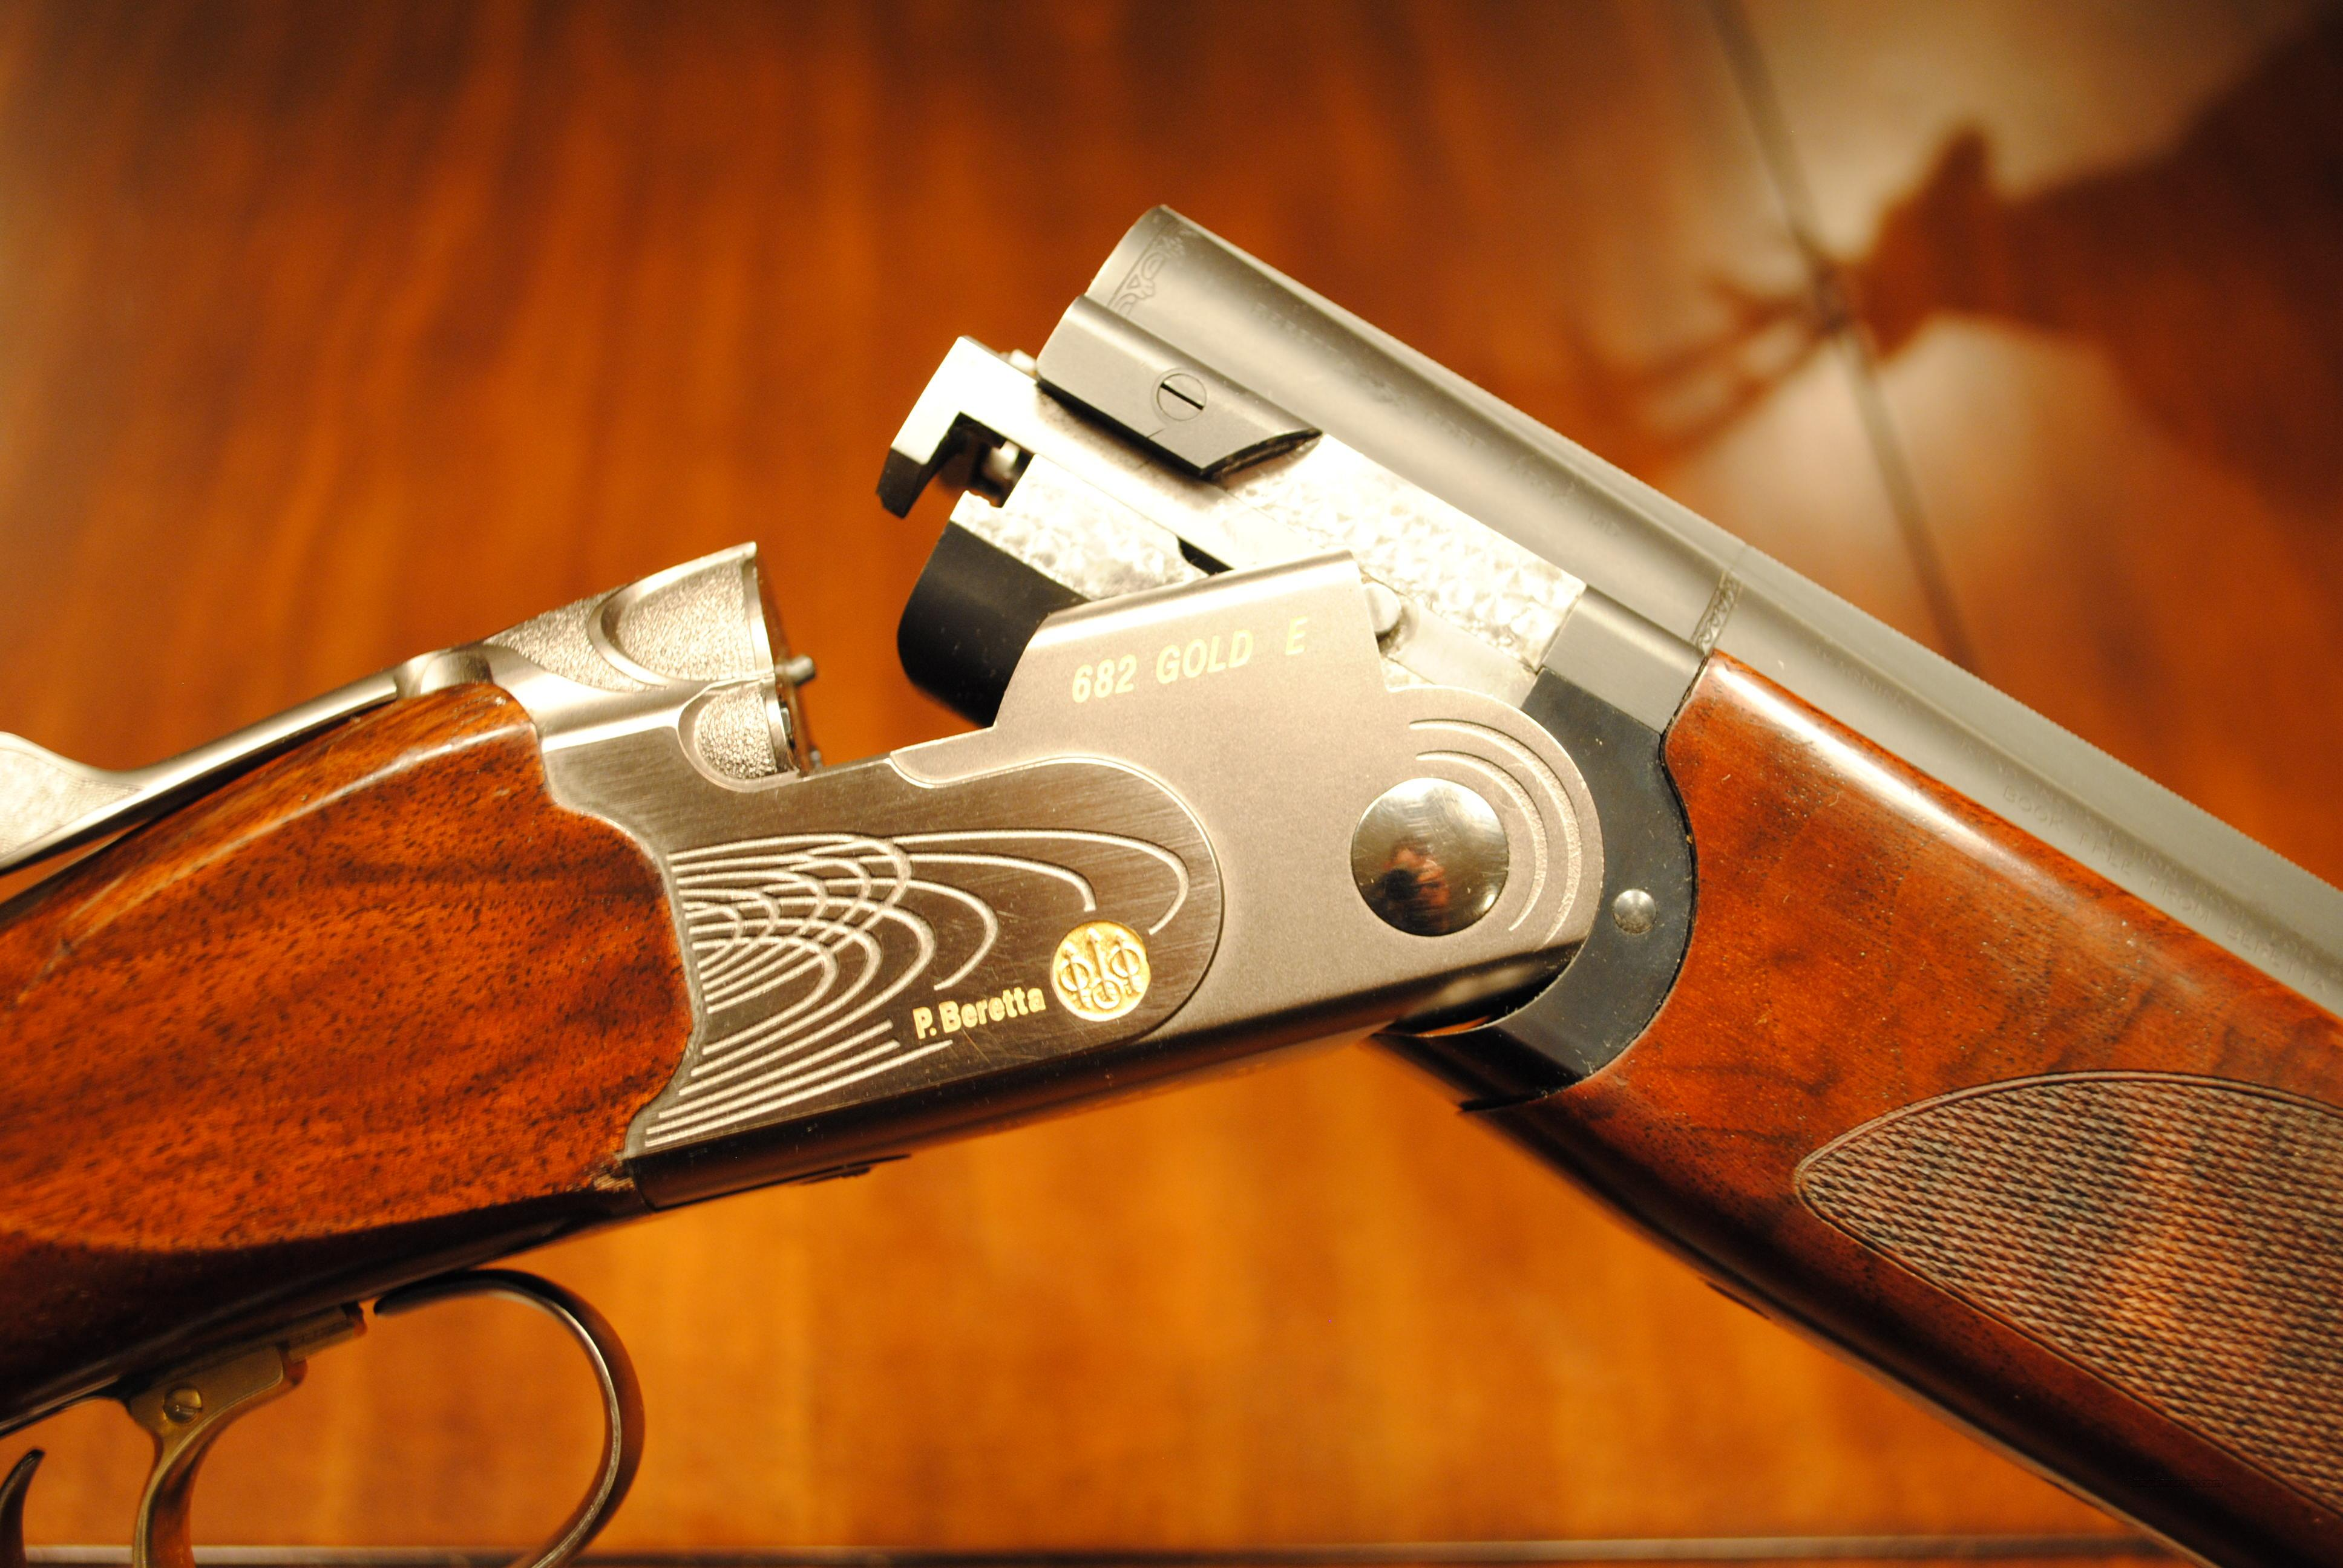 REDUCED! Beretta 682 Gold E 20 GAUGE Sporting!  Guns > Shotguns > Beretta Shotguns > O/U > Trap/Skeet